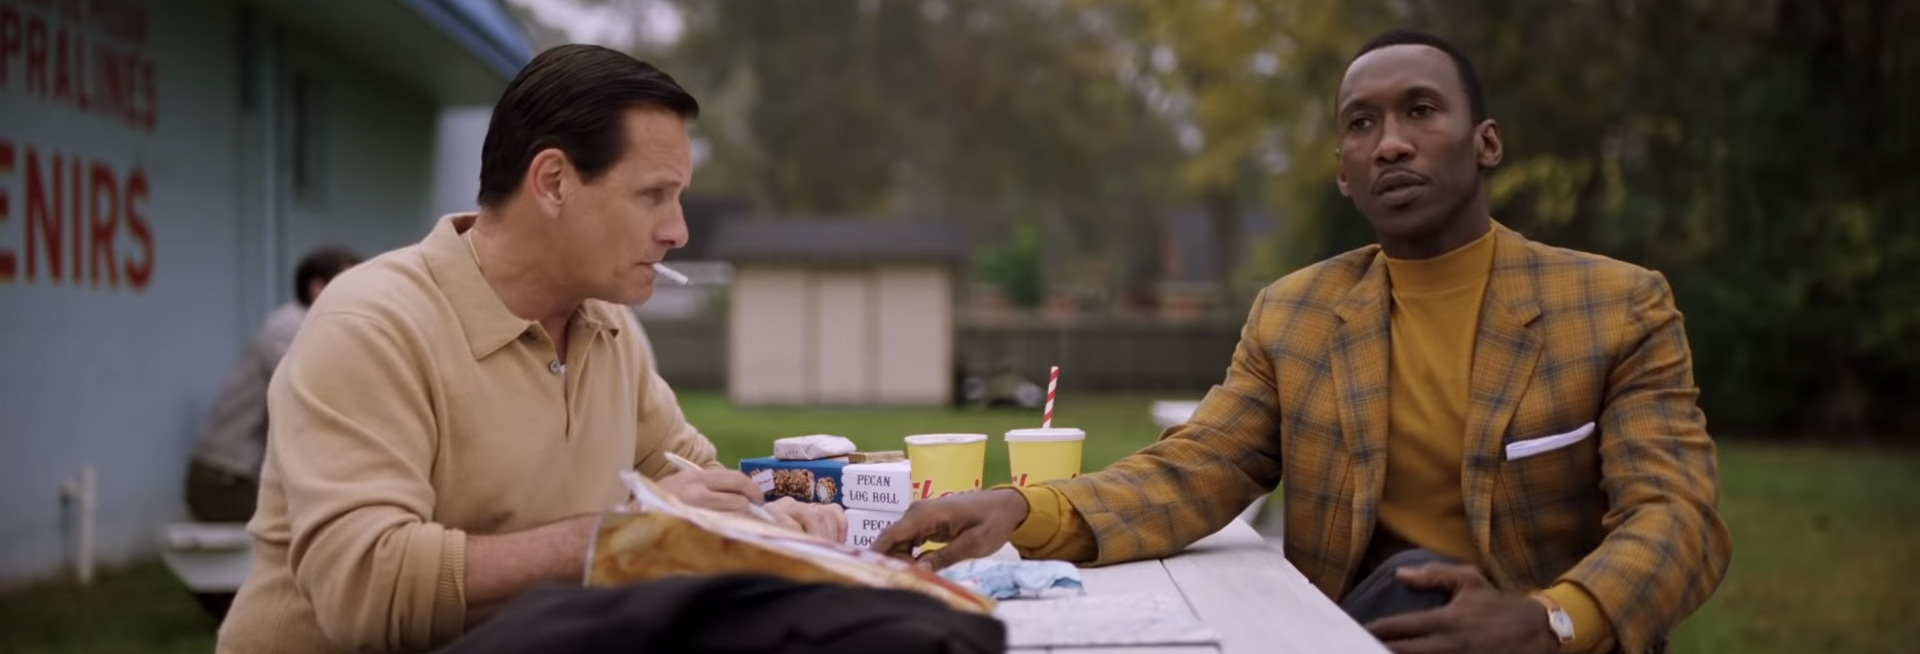 Green Book. Image Credit: Universal Pictures.